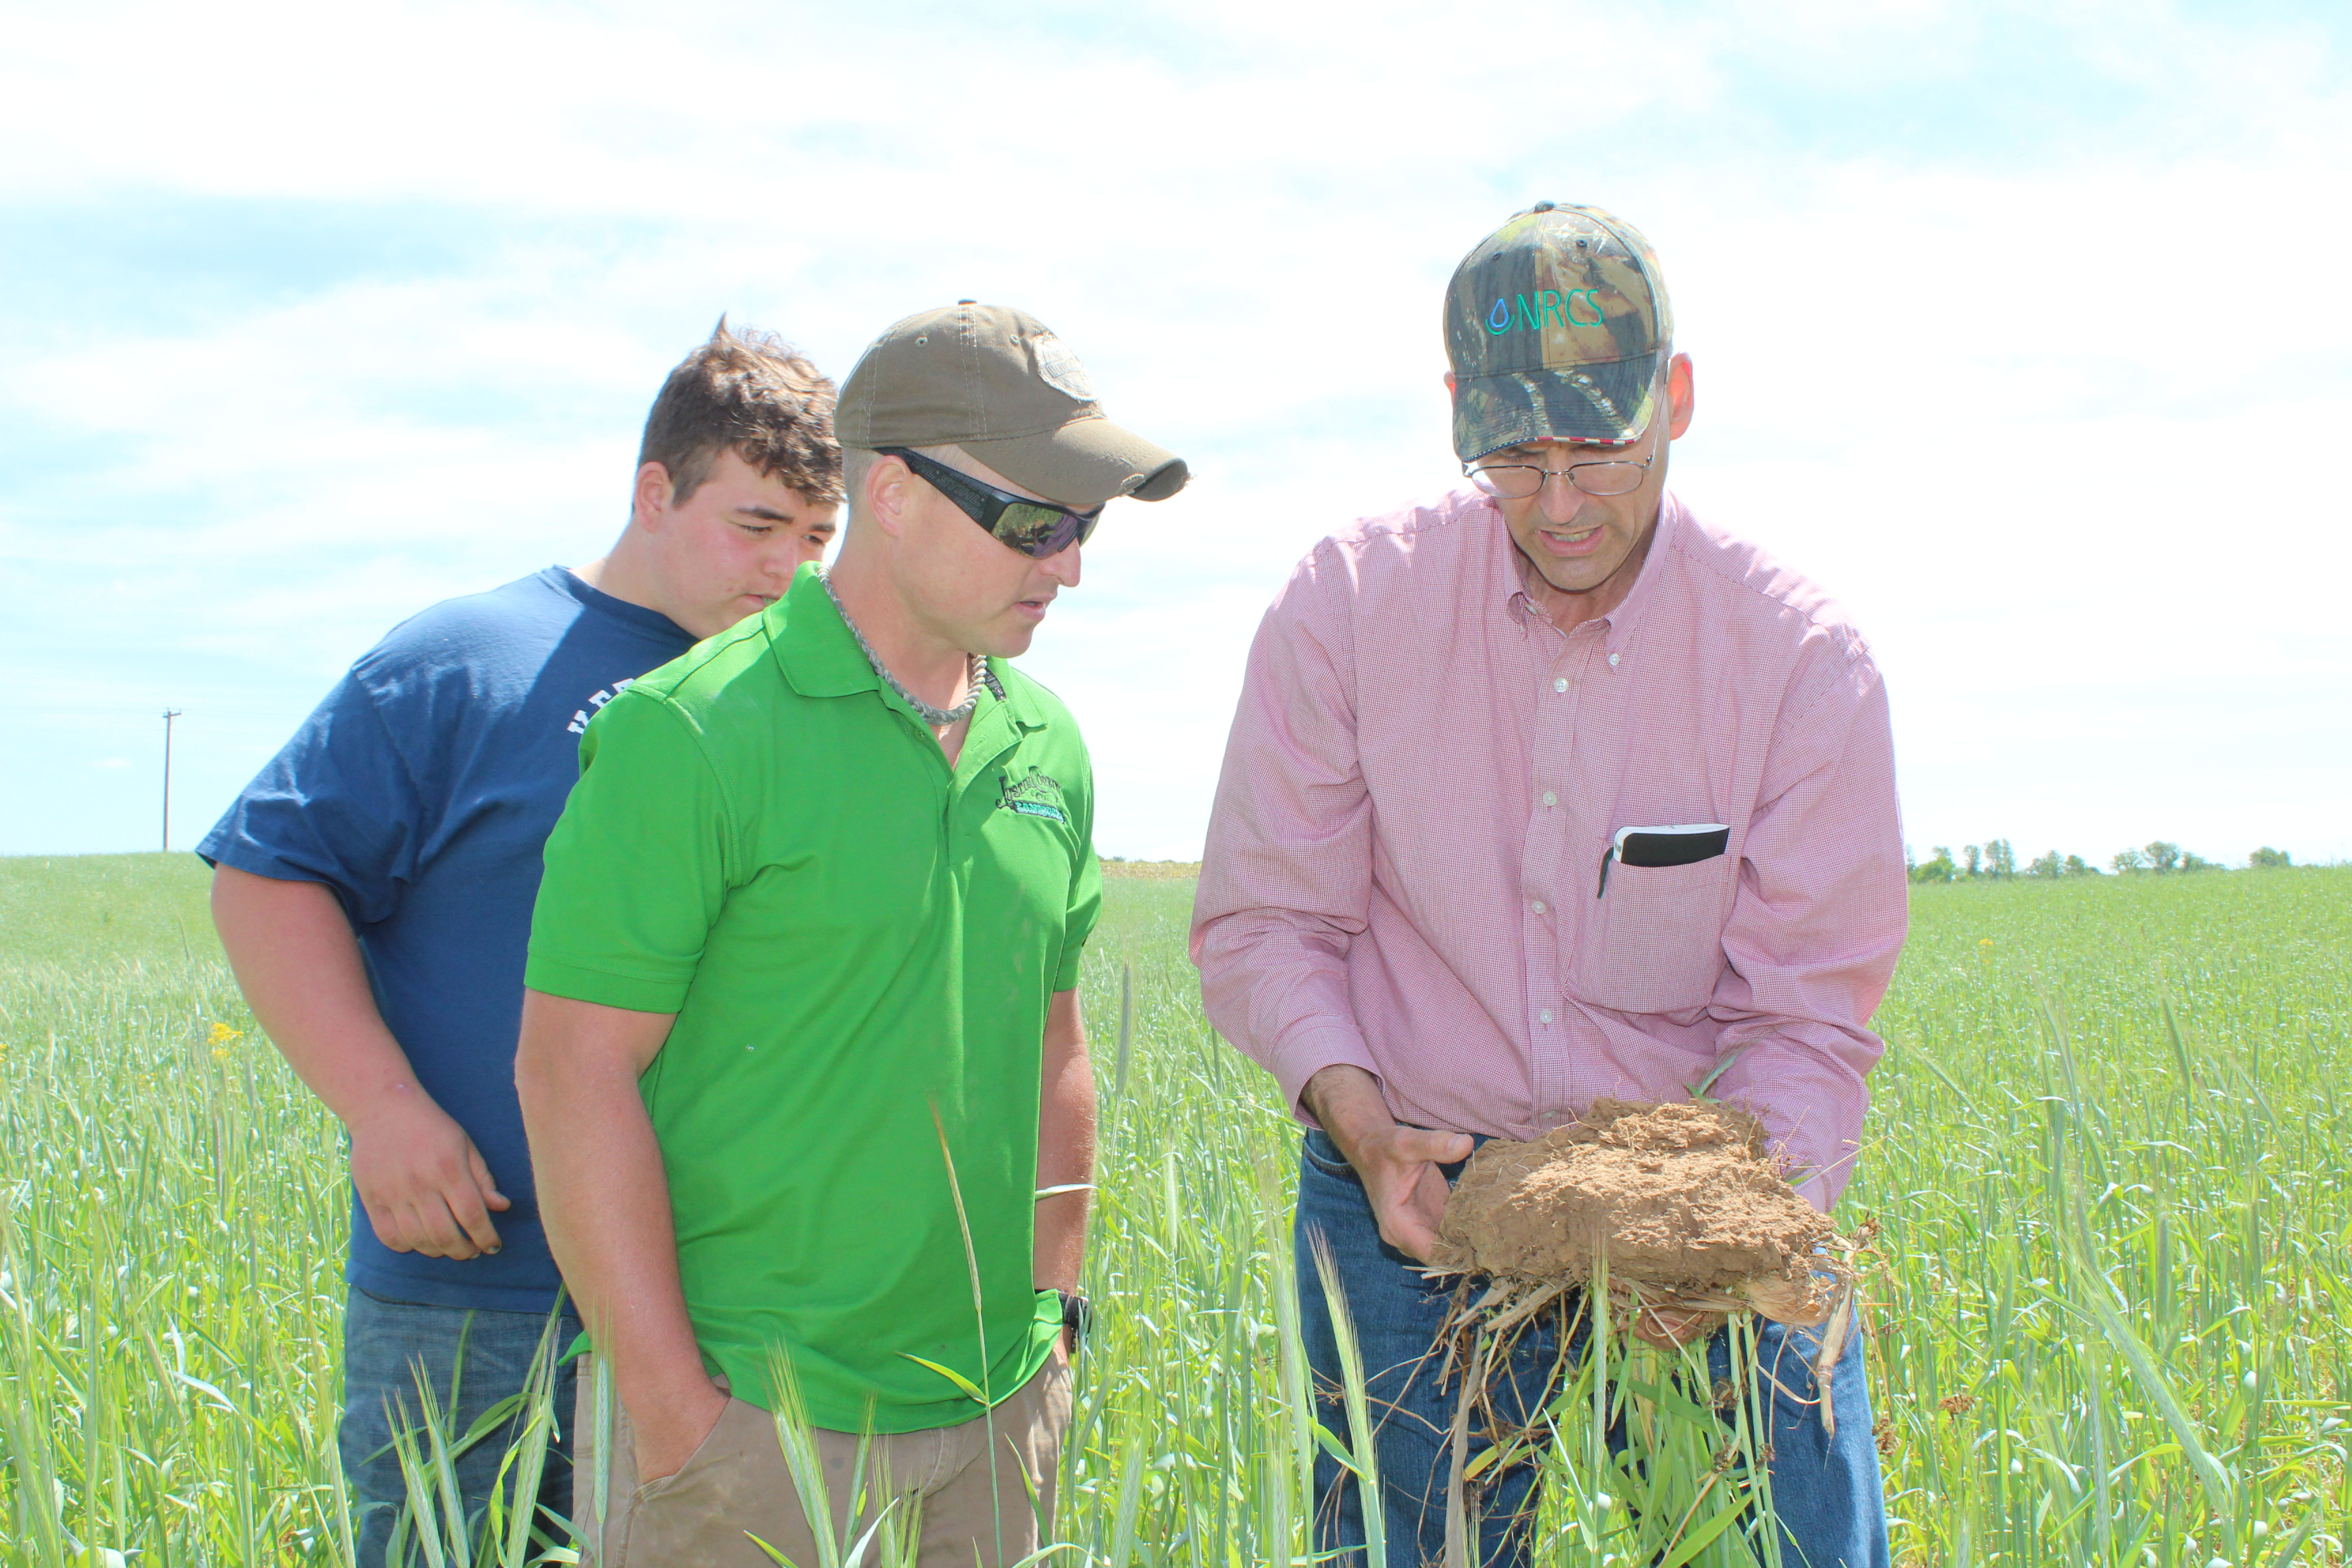 John Graham, soil health specialist, explains about pore space in soil as landowner looks on.